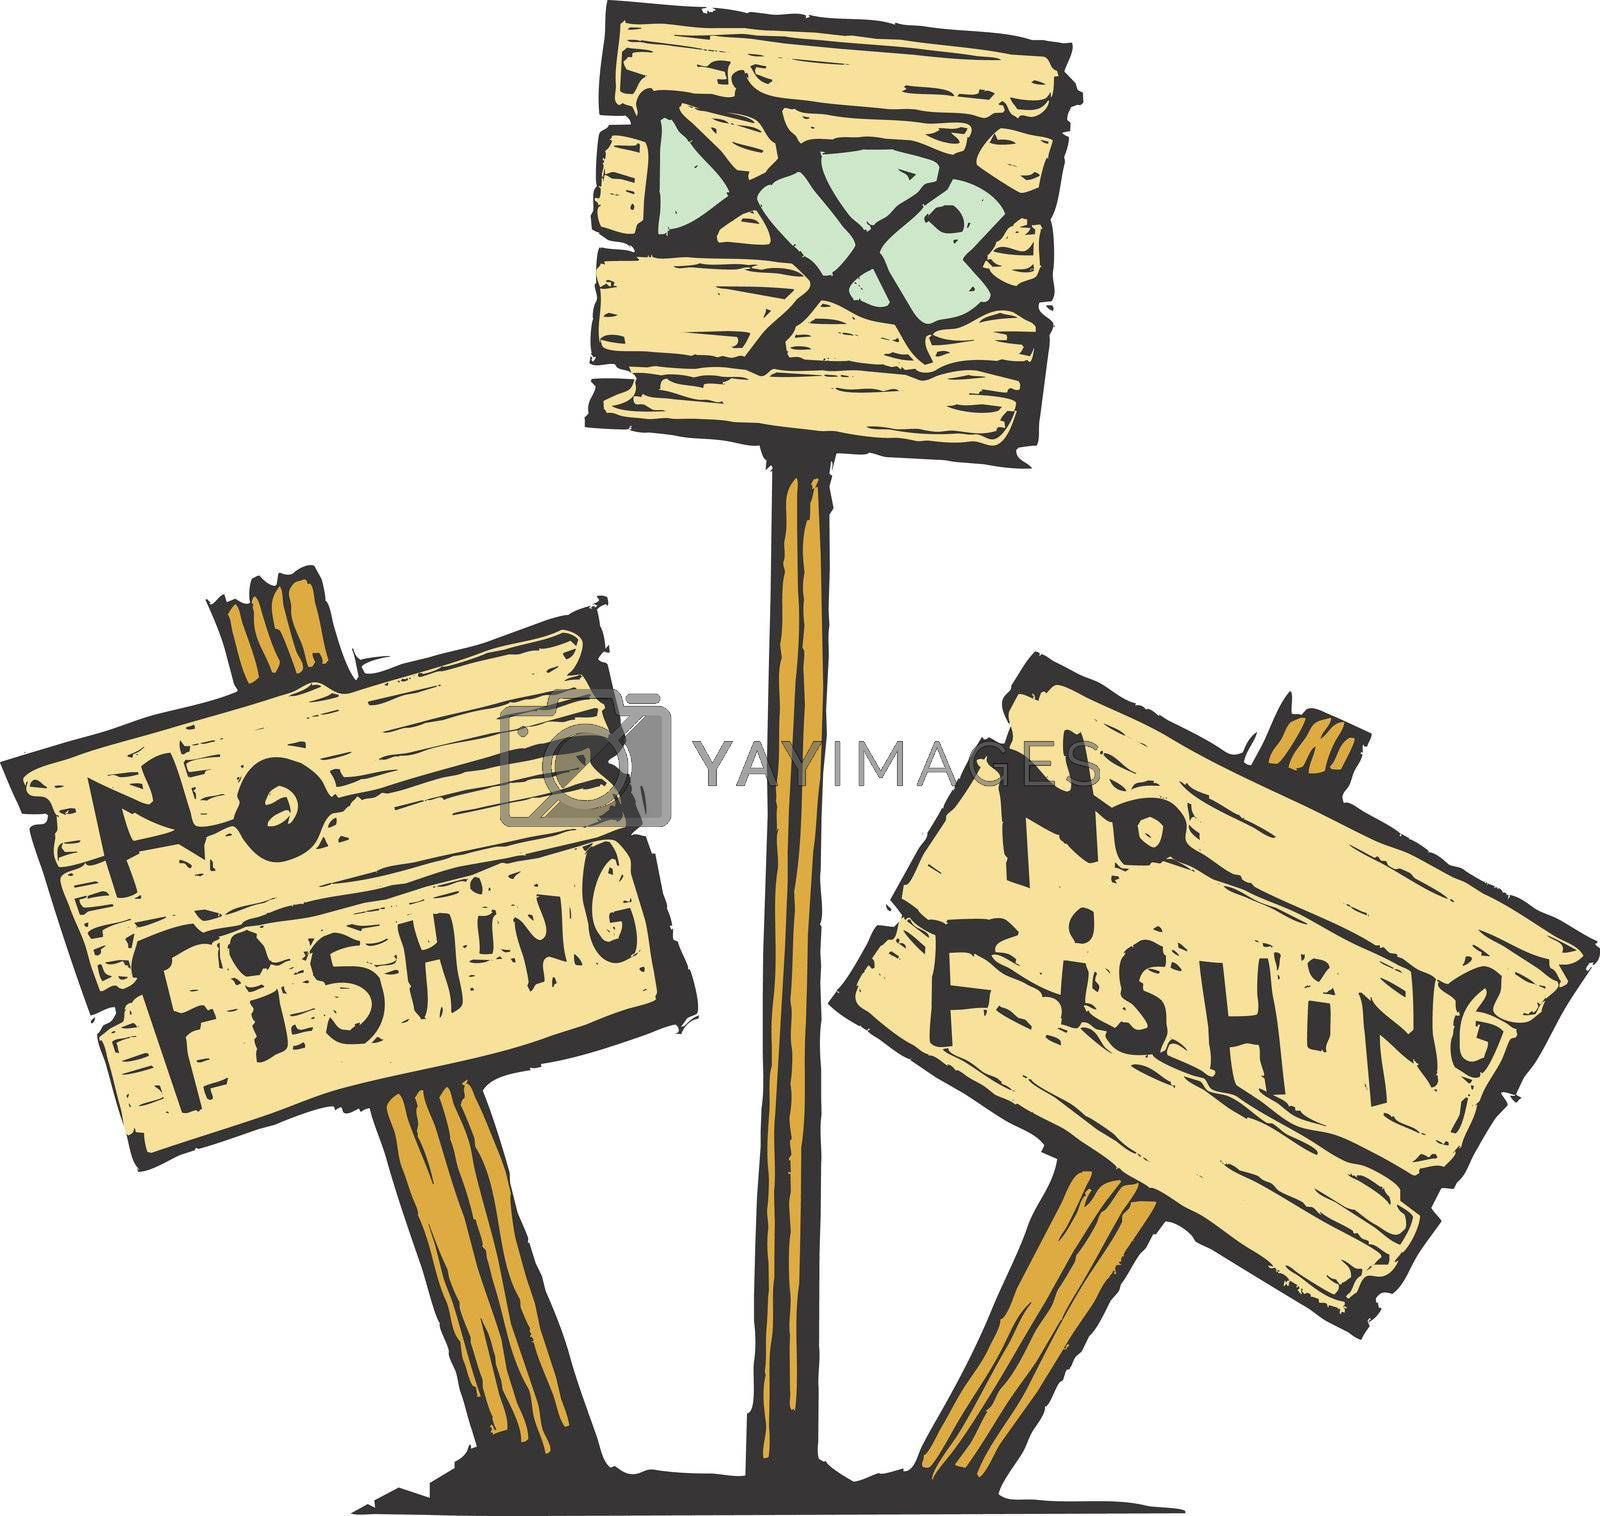 Three no fishing signs made of wood.